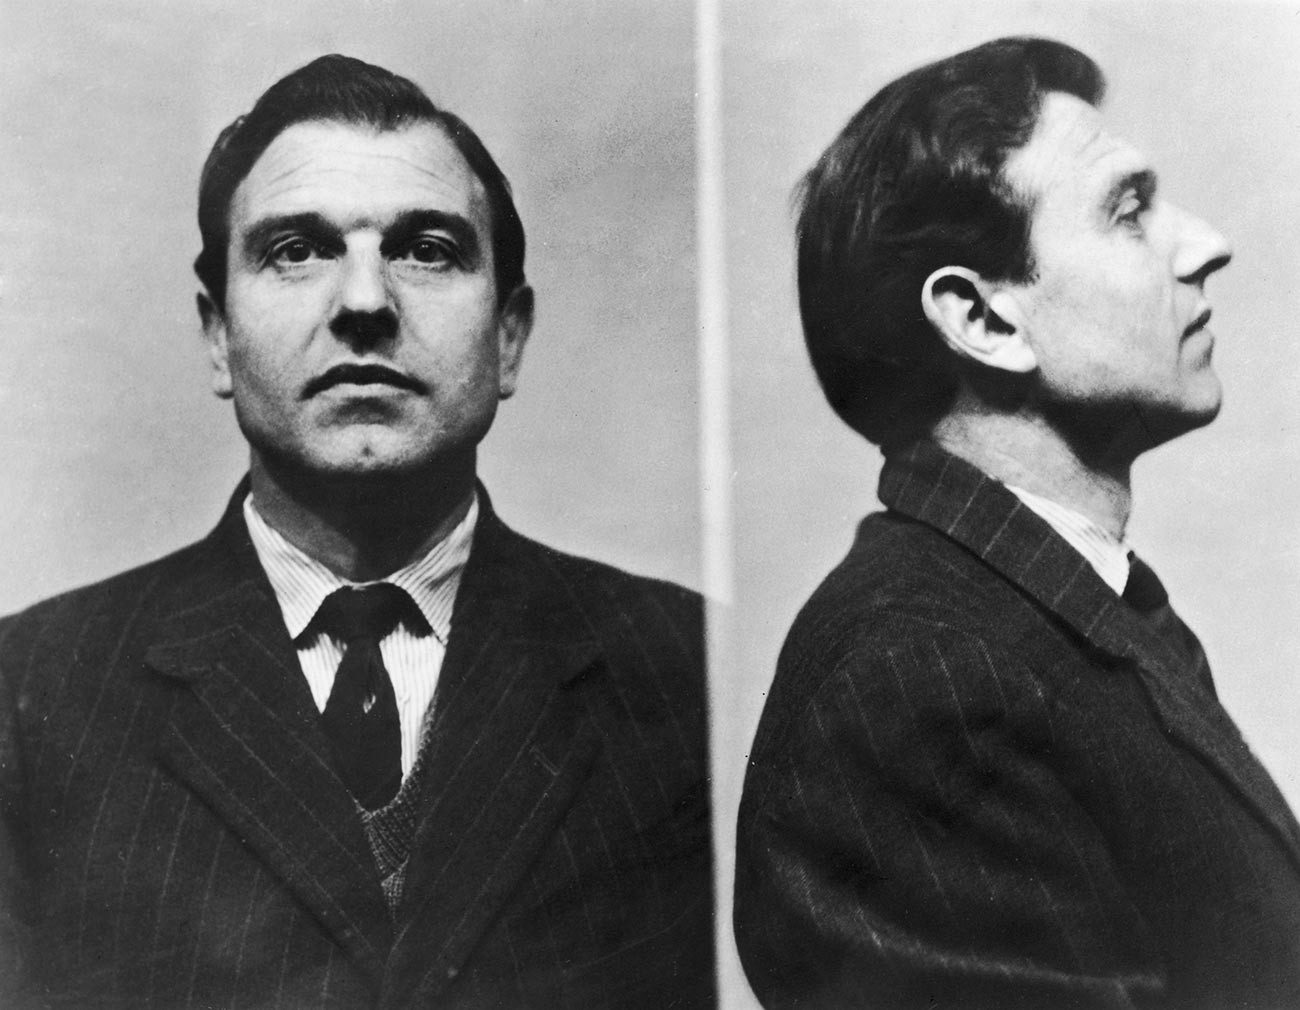 Prison pictures of George Blake, 1961.